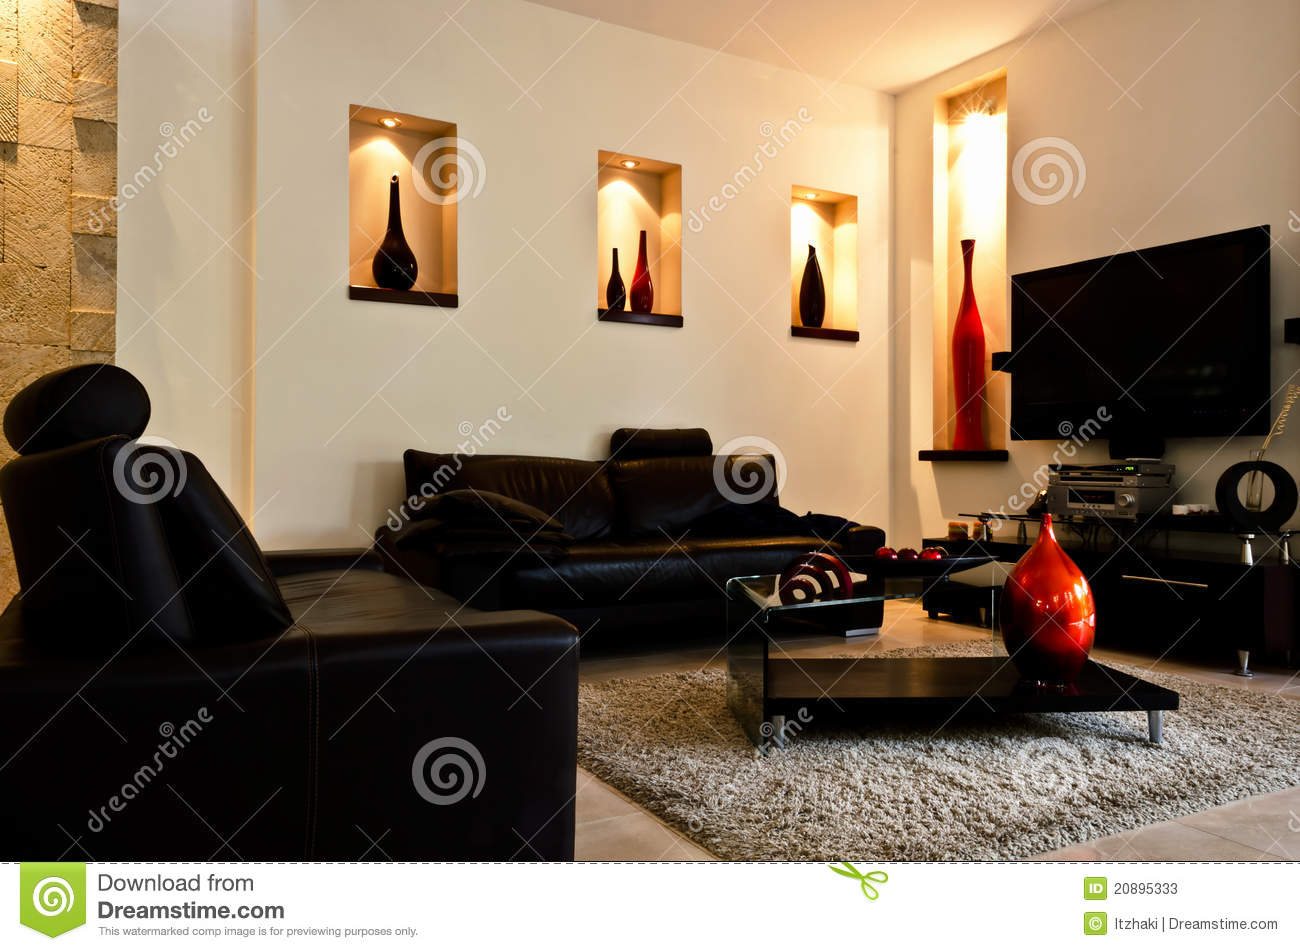 salle de s jour moderne photos stock image 20895333. Black Bedroom Furniture Sets. Home Design Ideas